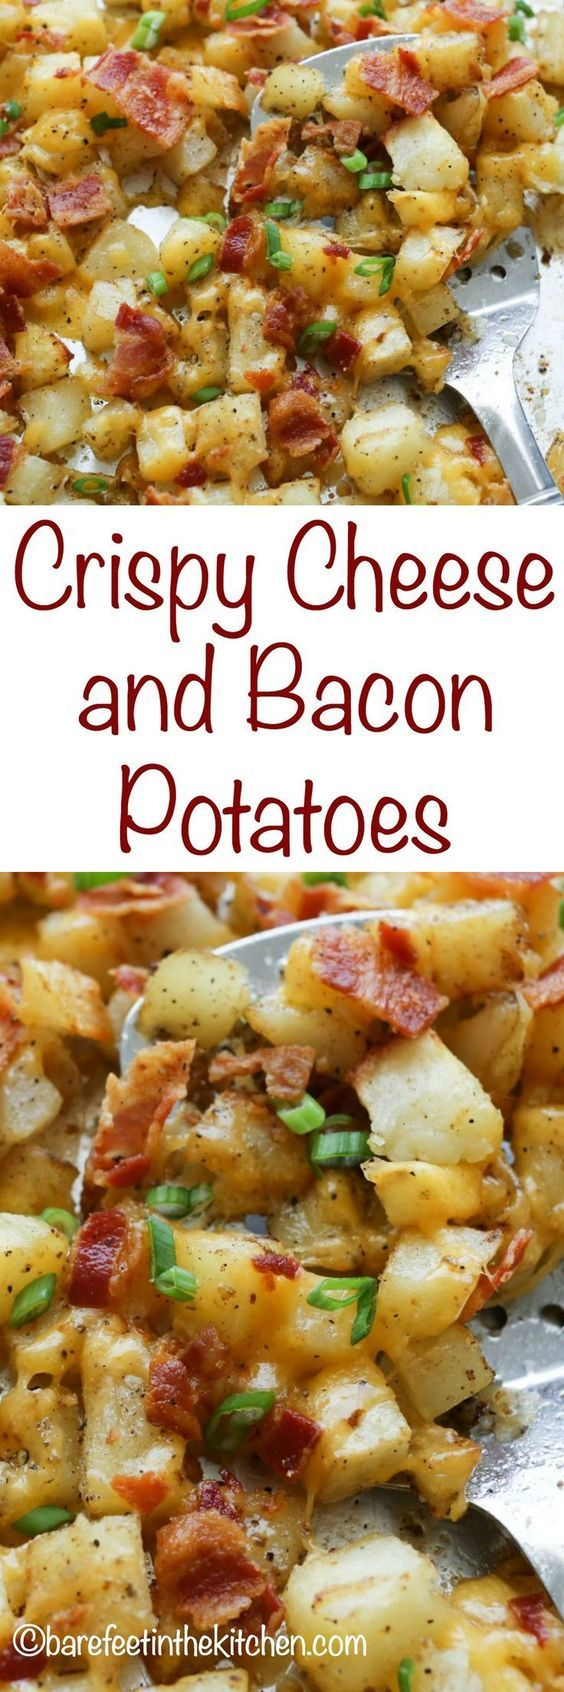 Crispy Cheese and Bacon Potatoes is part of food-recipes - 4 teaspoon freshly ground black pepper 1…